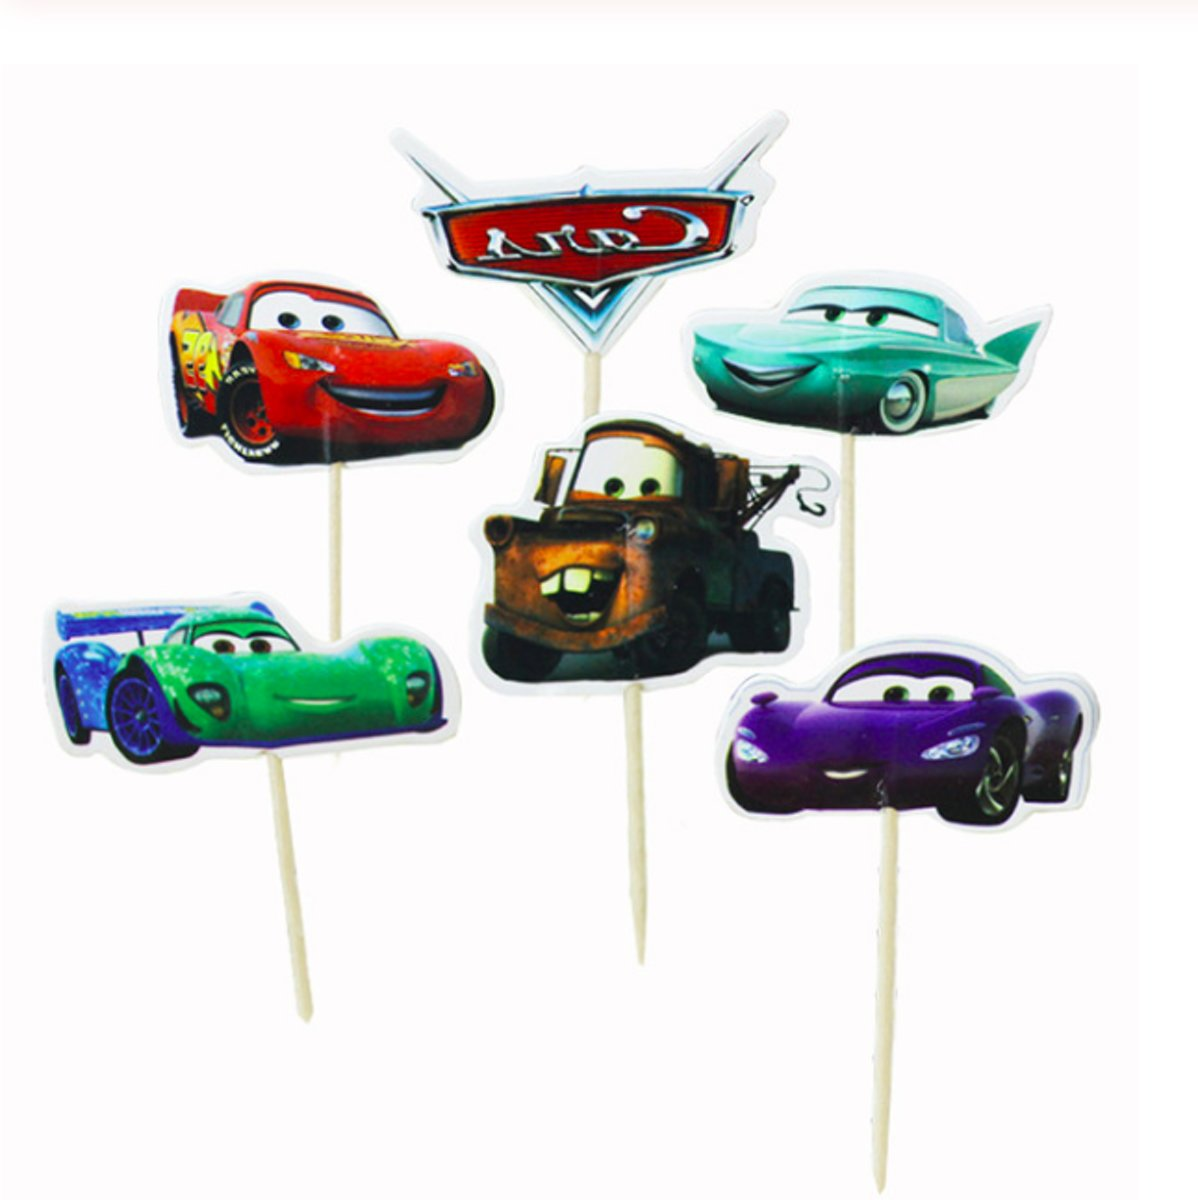 ProductsGoods - 24 x Leuke Cars cocktailprikkers